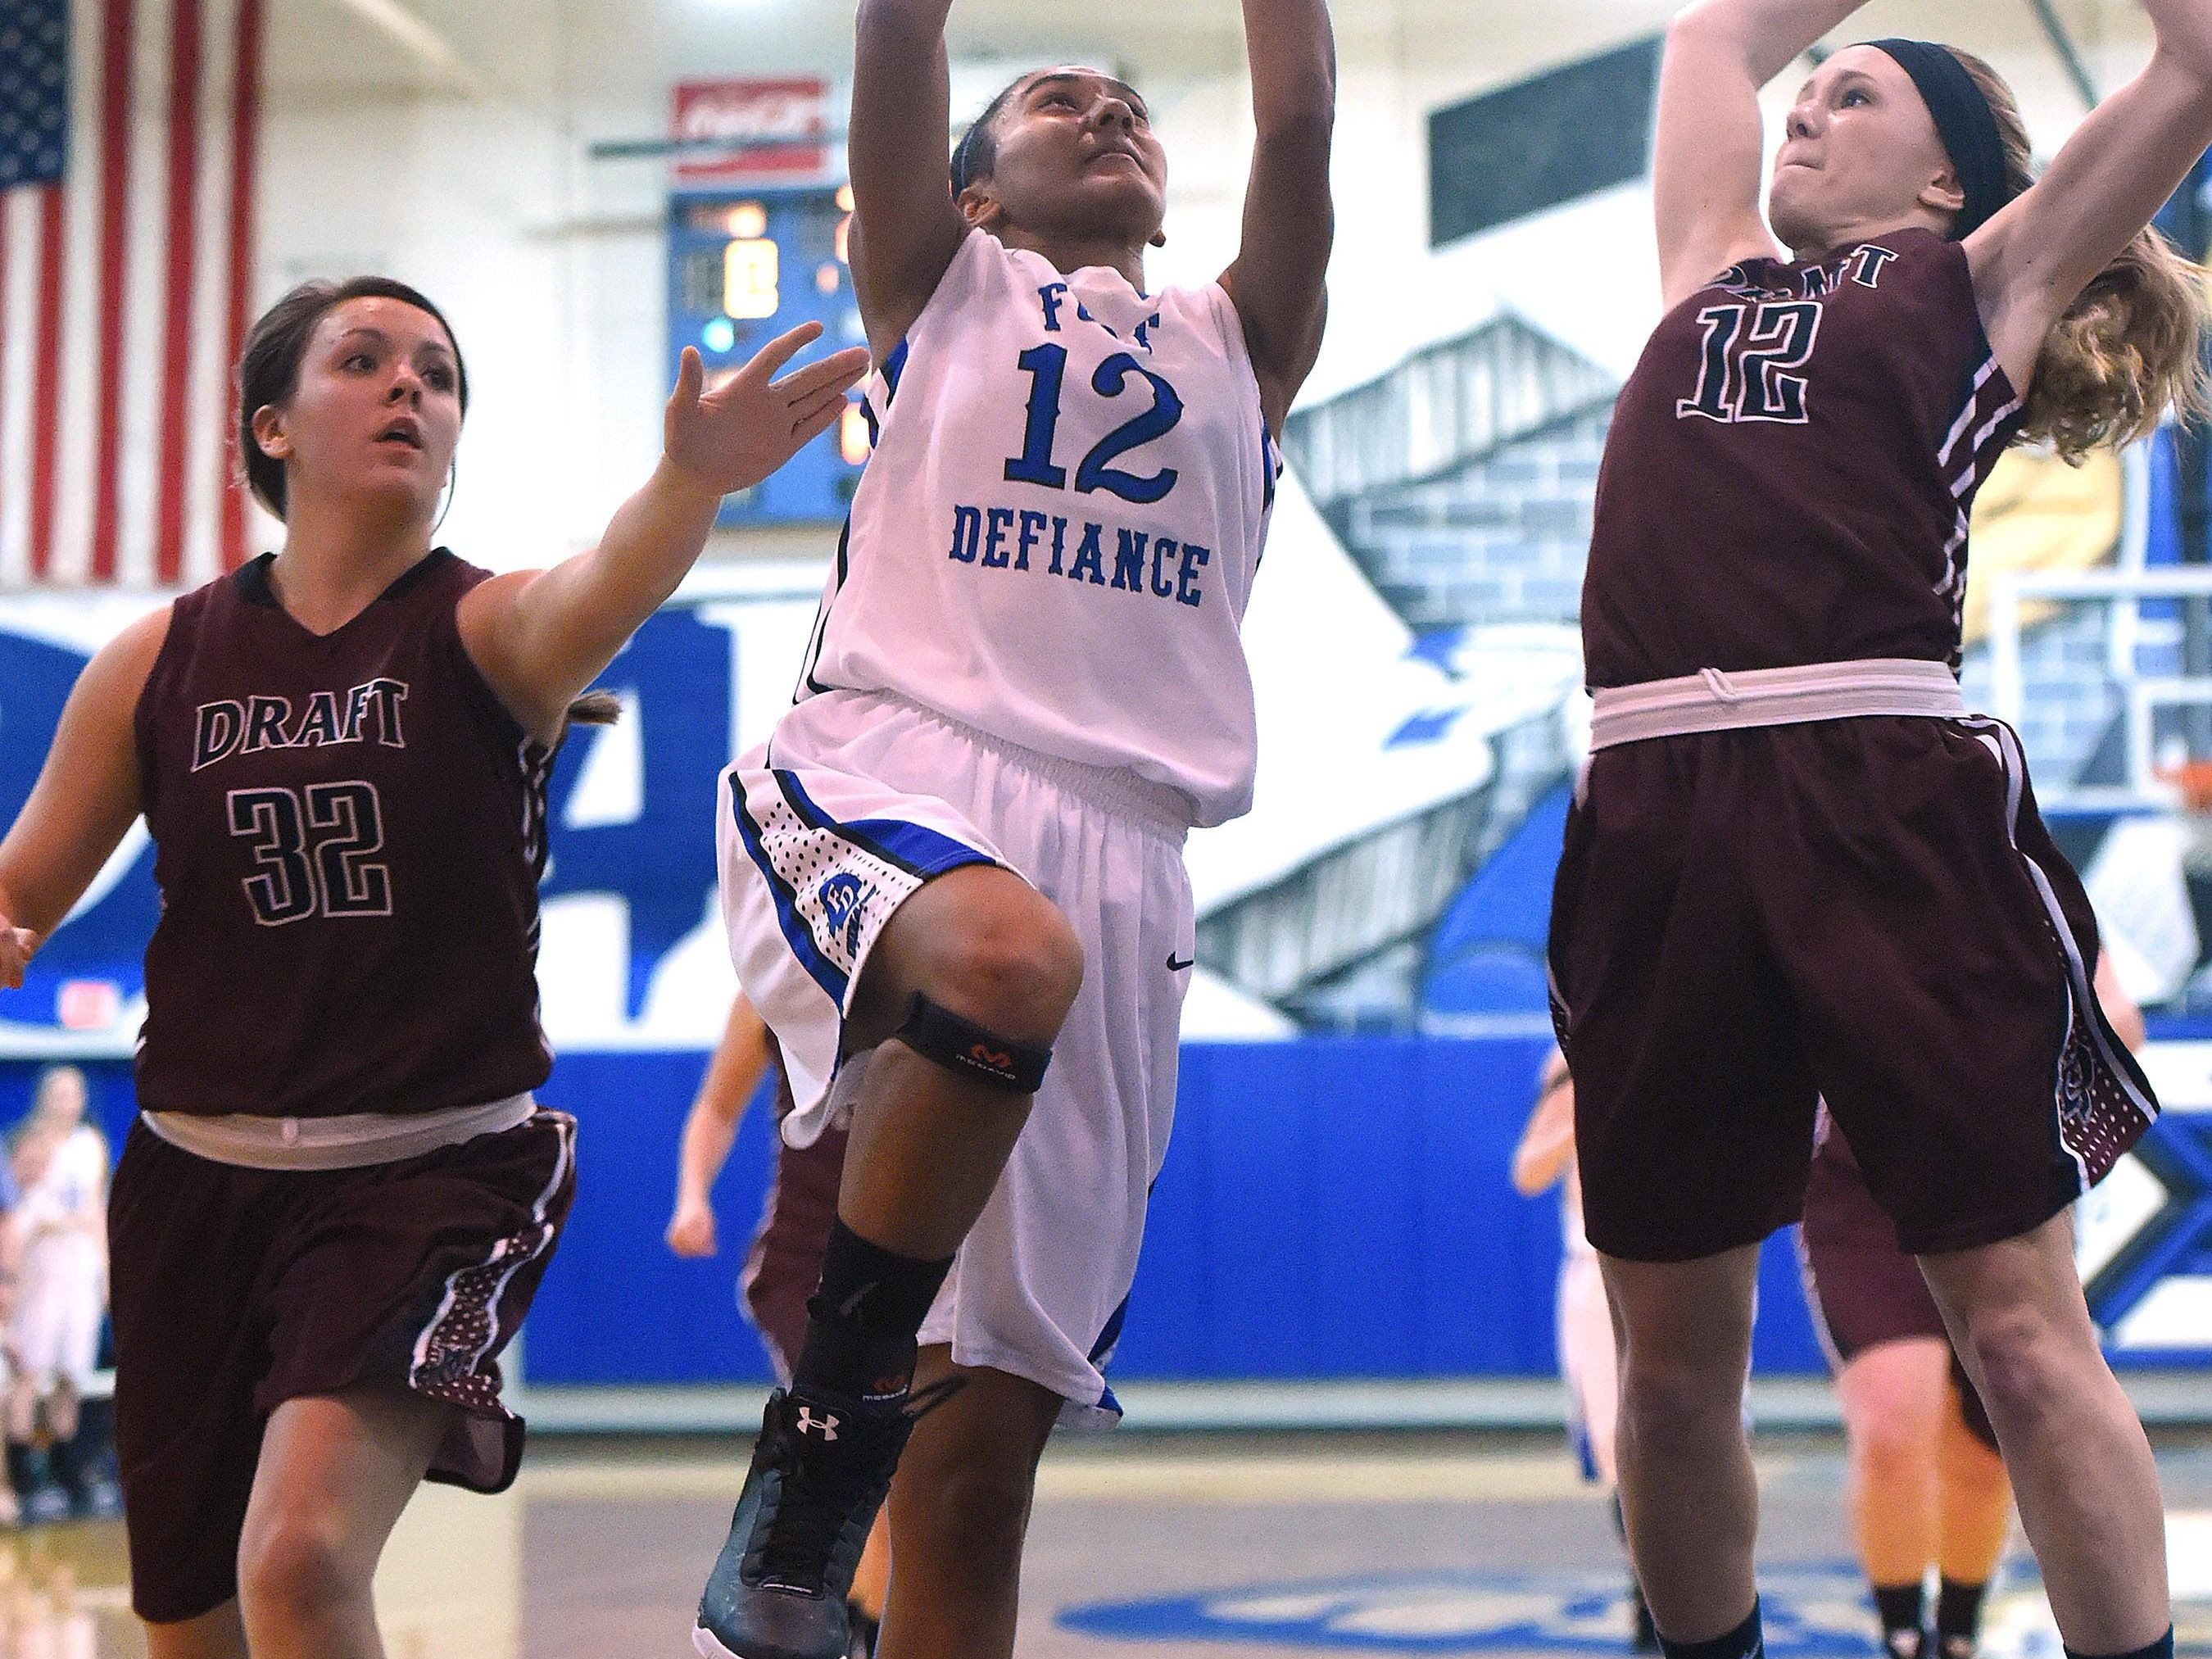 Fort Defiance's Tiffany Taylor takes the ball up as Stuarts Draft's Bailey Turner and Deborah Black guard during a basketball game played in Fort Defiance on Friday, Dec. 11, 2015.